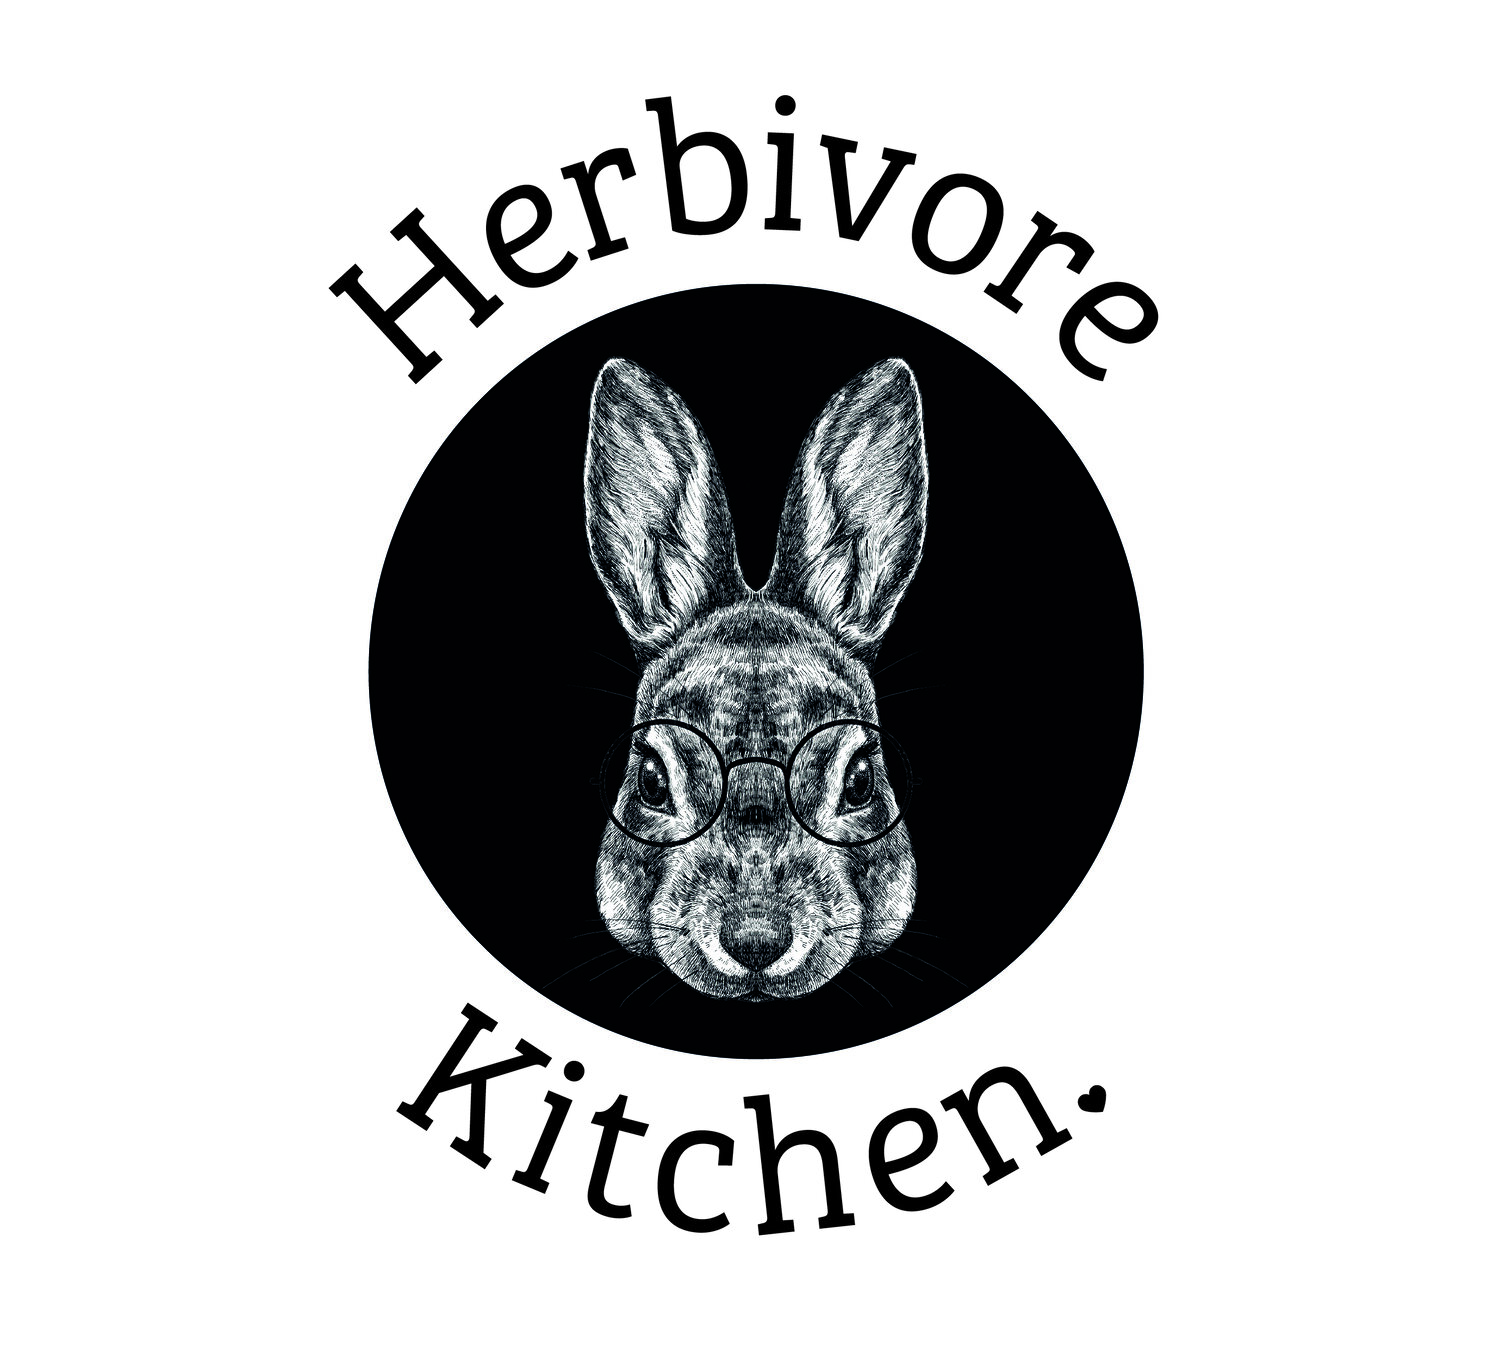 THE HERBIVORE KITCHEN